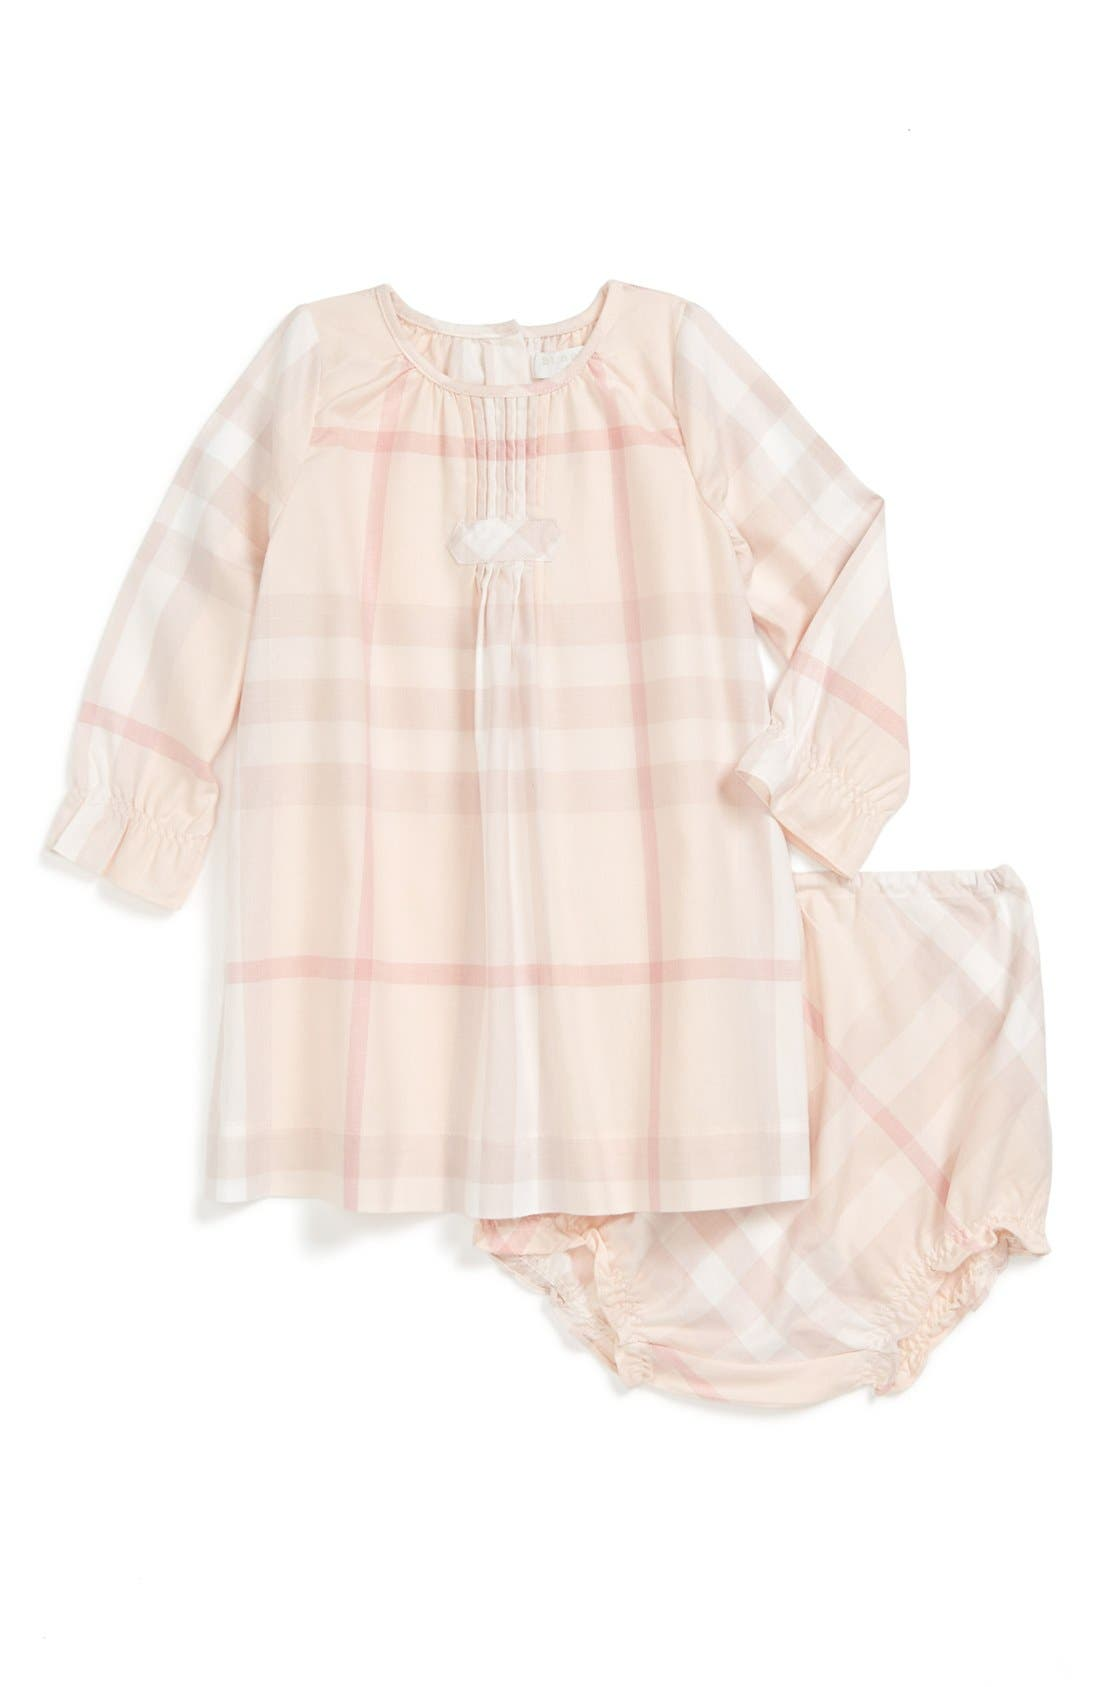 Alternate Image 1 Selected - Burberry Check Print Dress & Bloomers (Baby Girls)